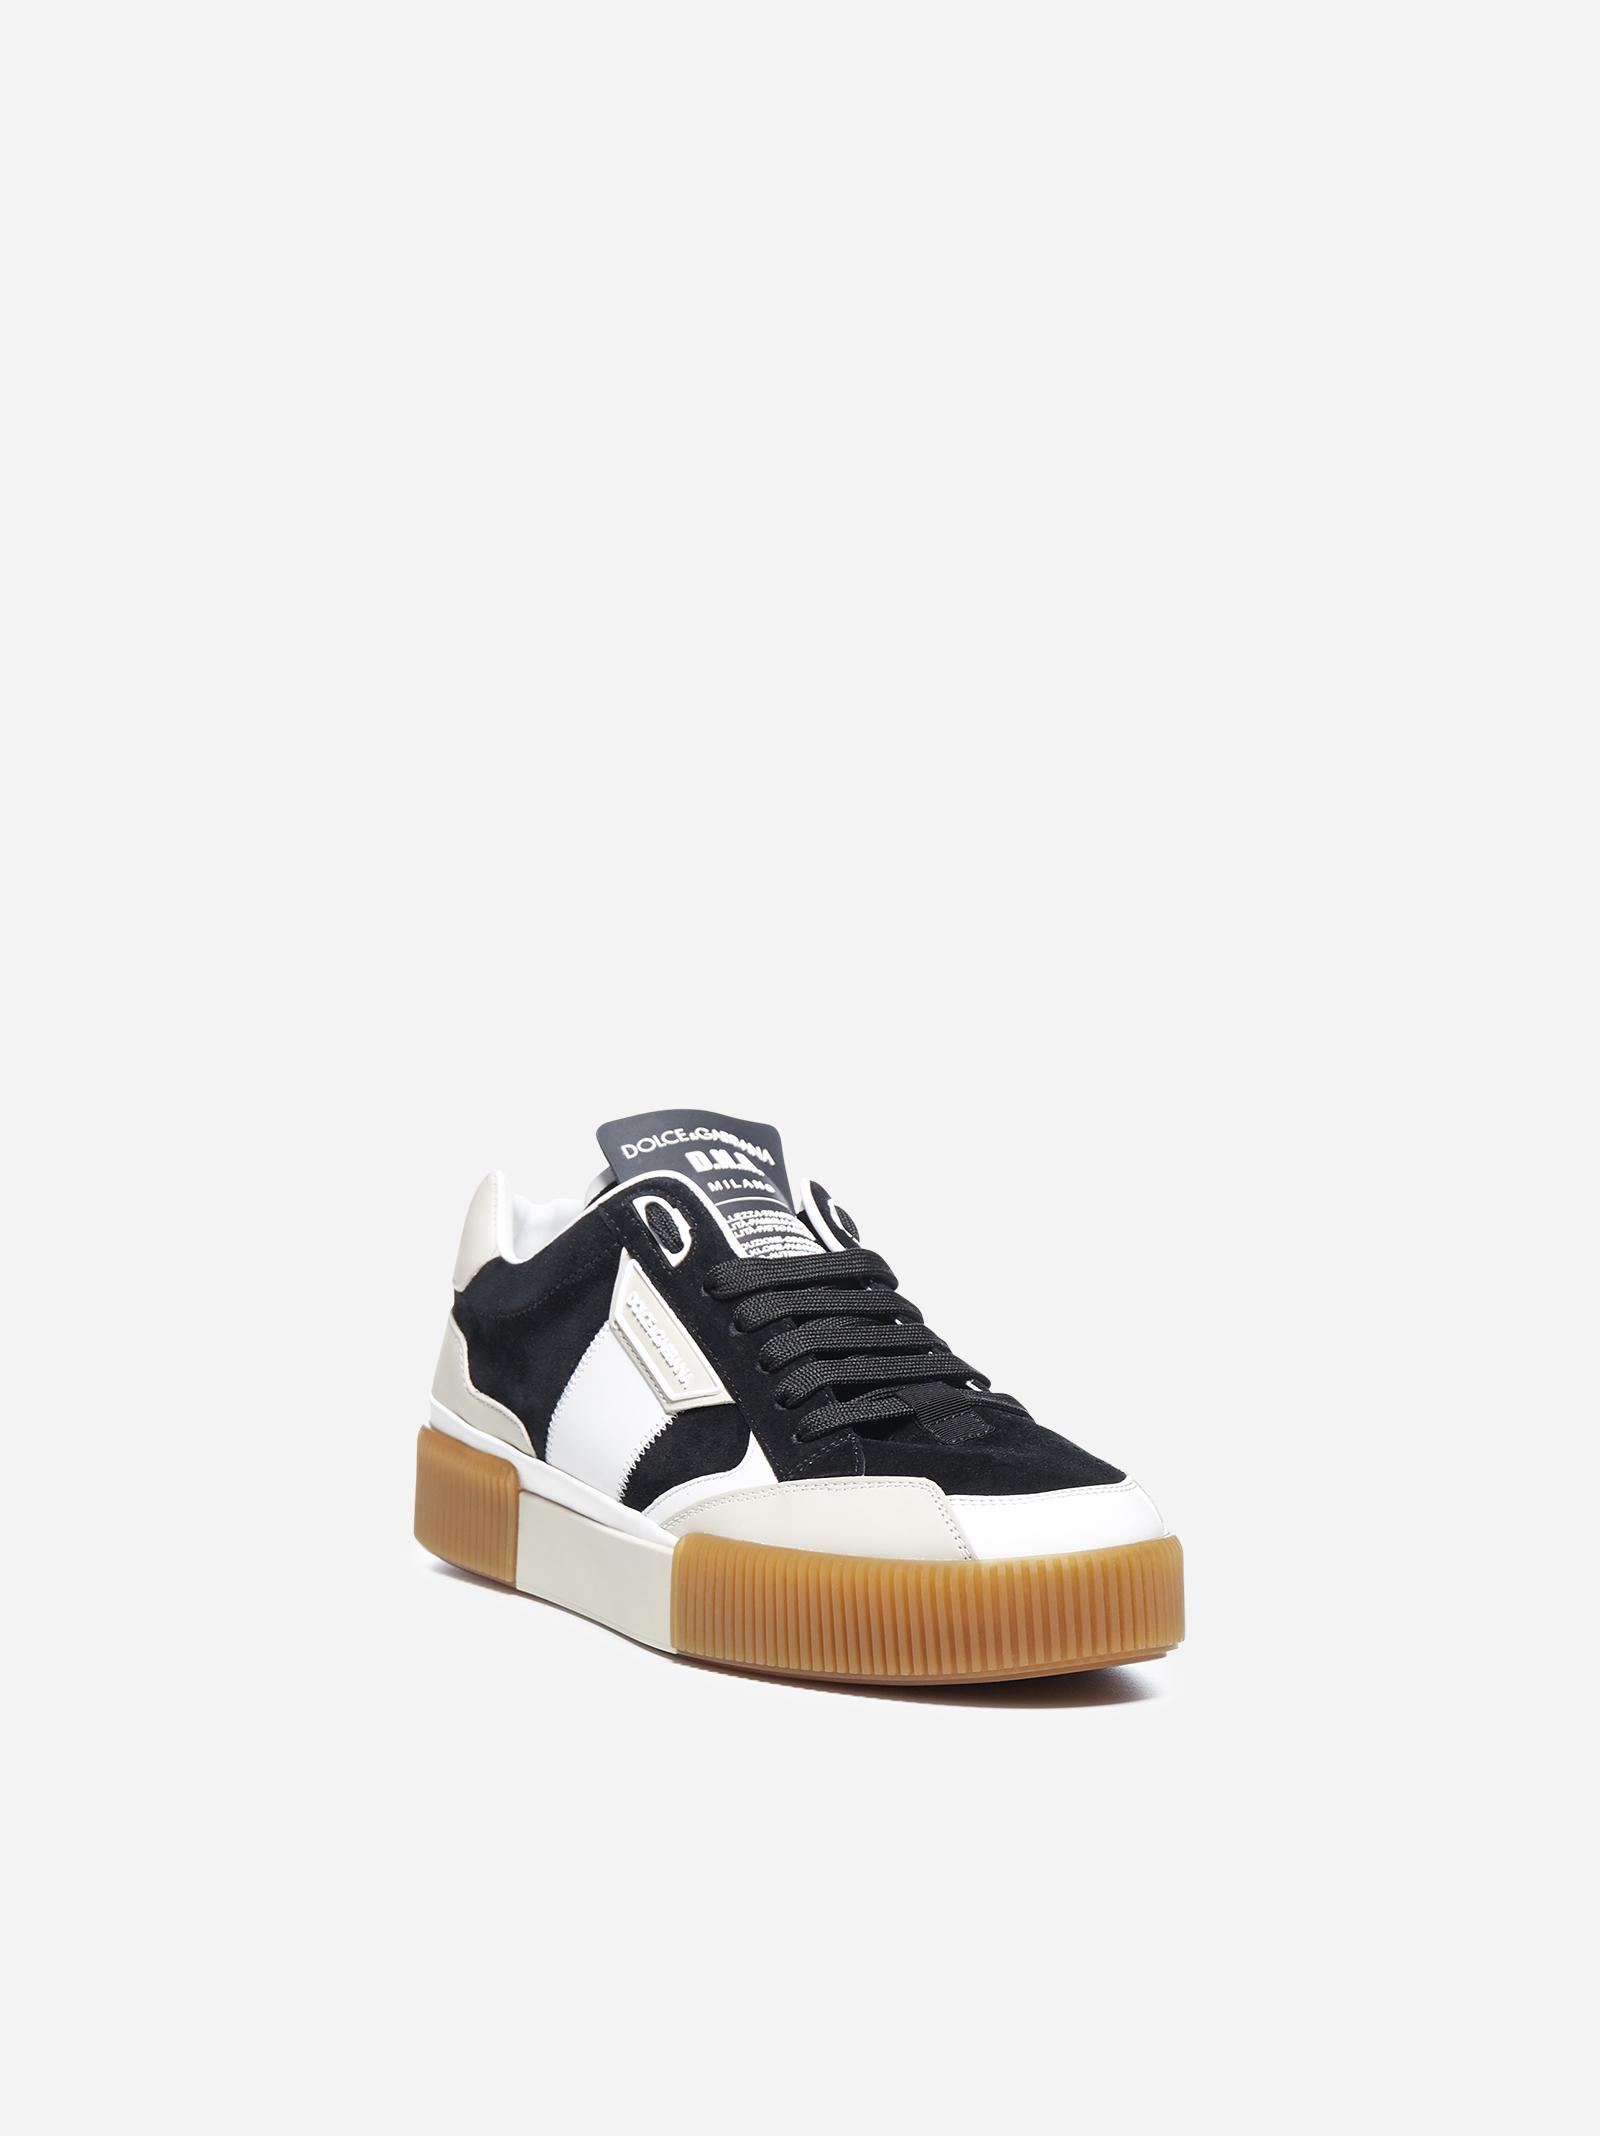 dolce and gabbana dna sneakers \u003e Up to